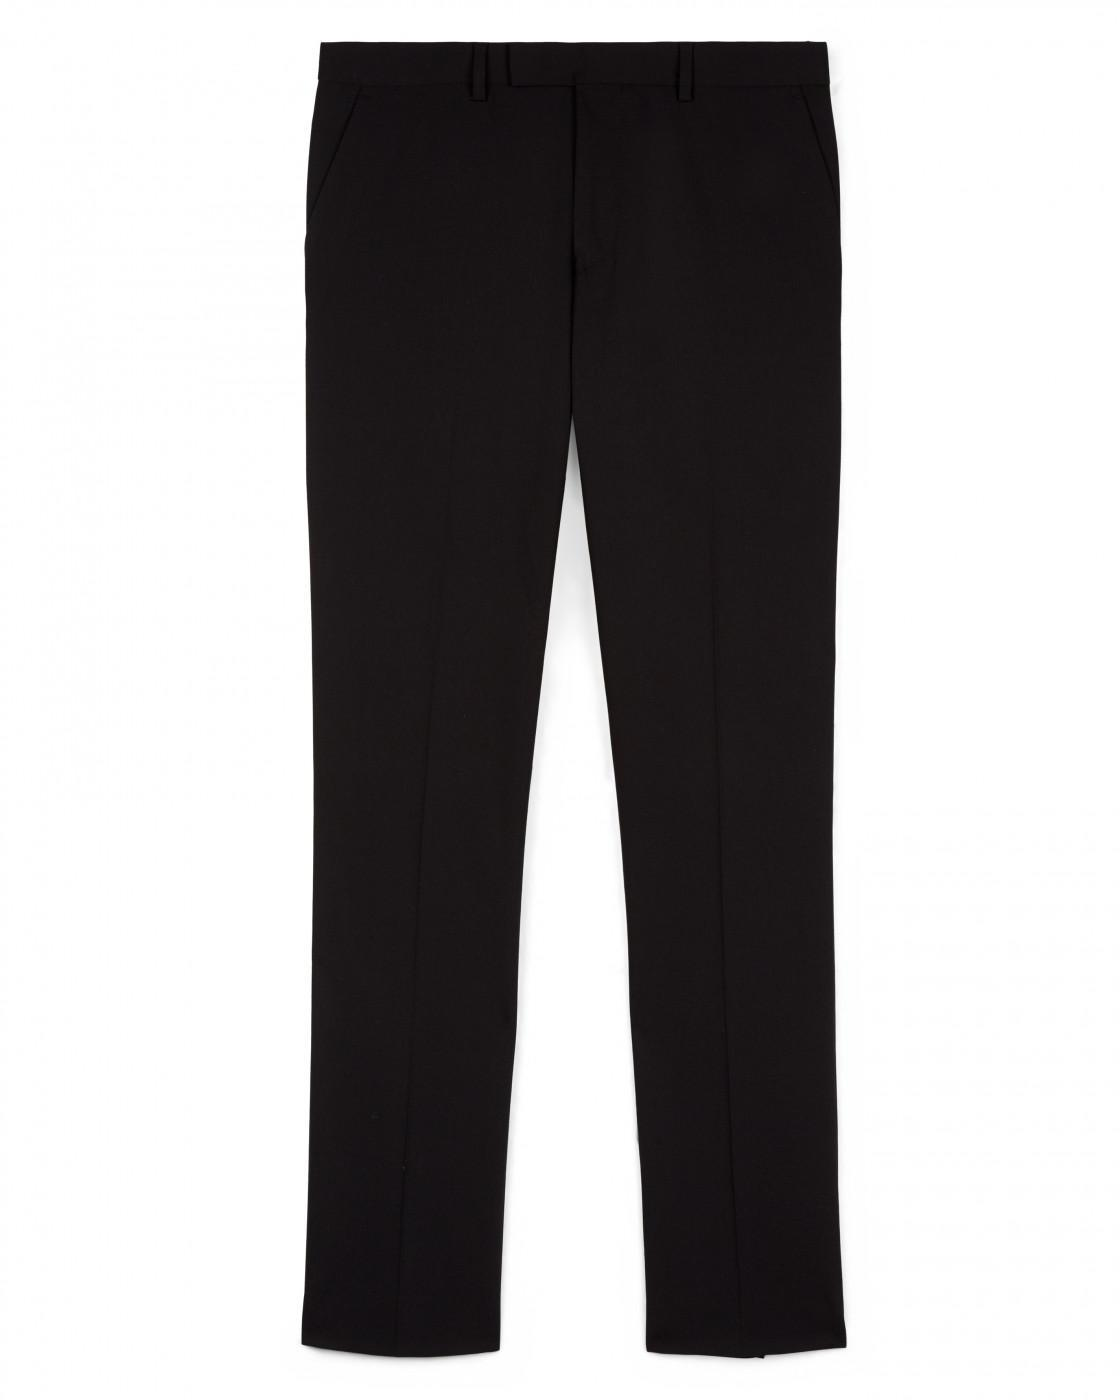 Skinny Black Suit Trouser By Austin Reed Thread